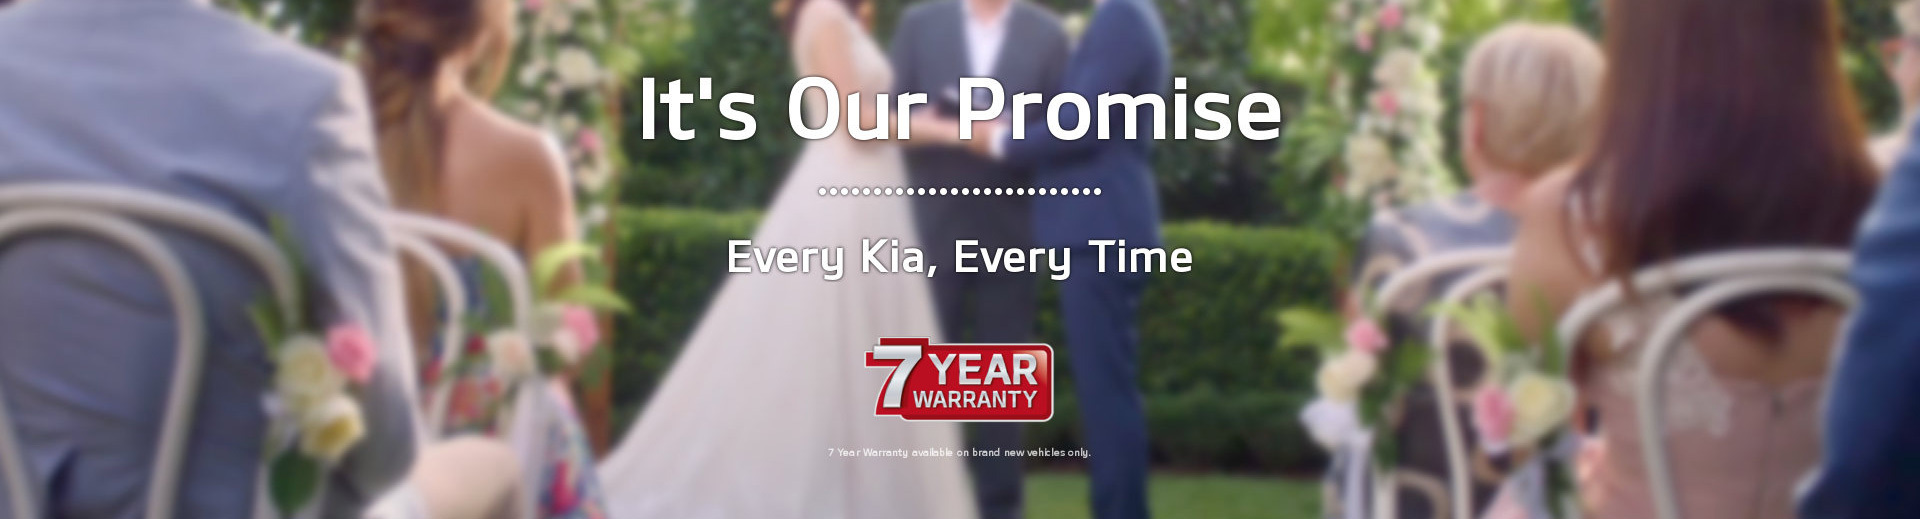 Kia - National Offer - Promising Offers